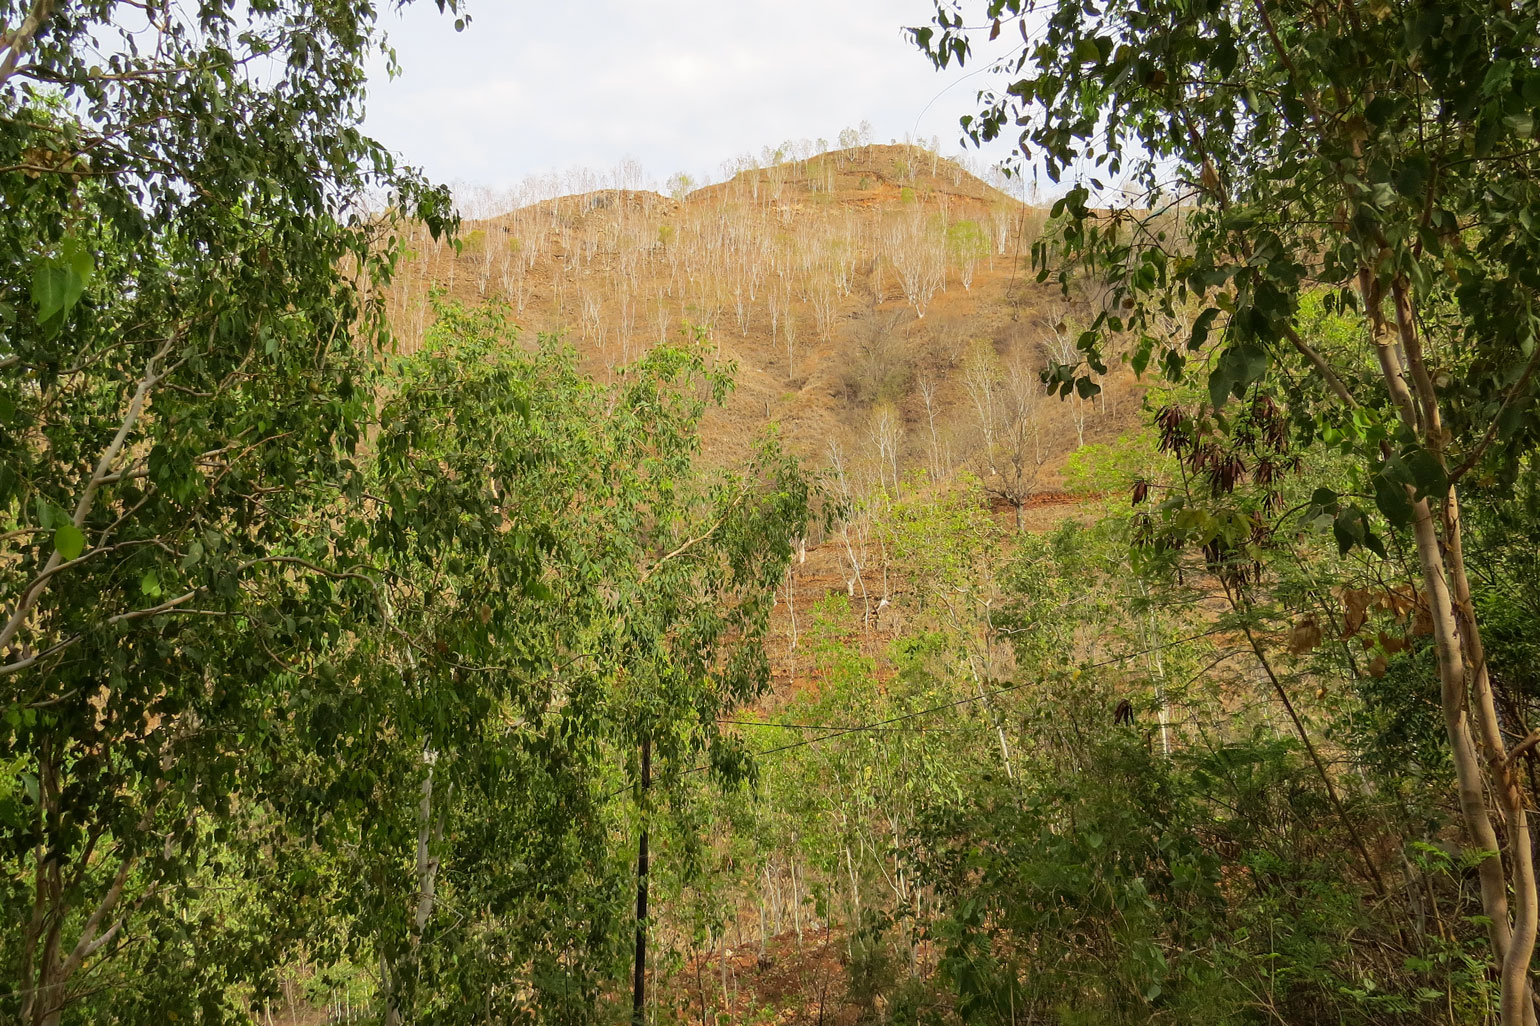 Regenerating soil in Timor-Leste with trees - A photo taken from among green, lush trees. In the background are hills where the soil is dry, brown and dotted with small, leafless trees.